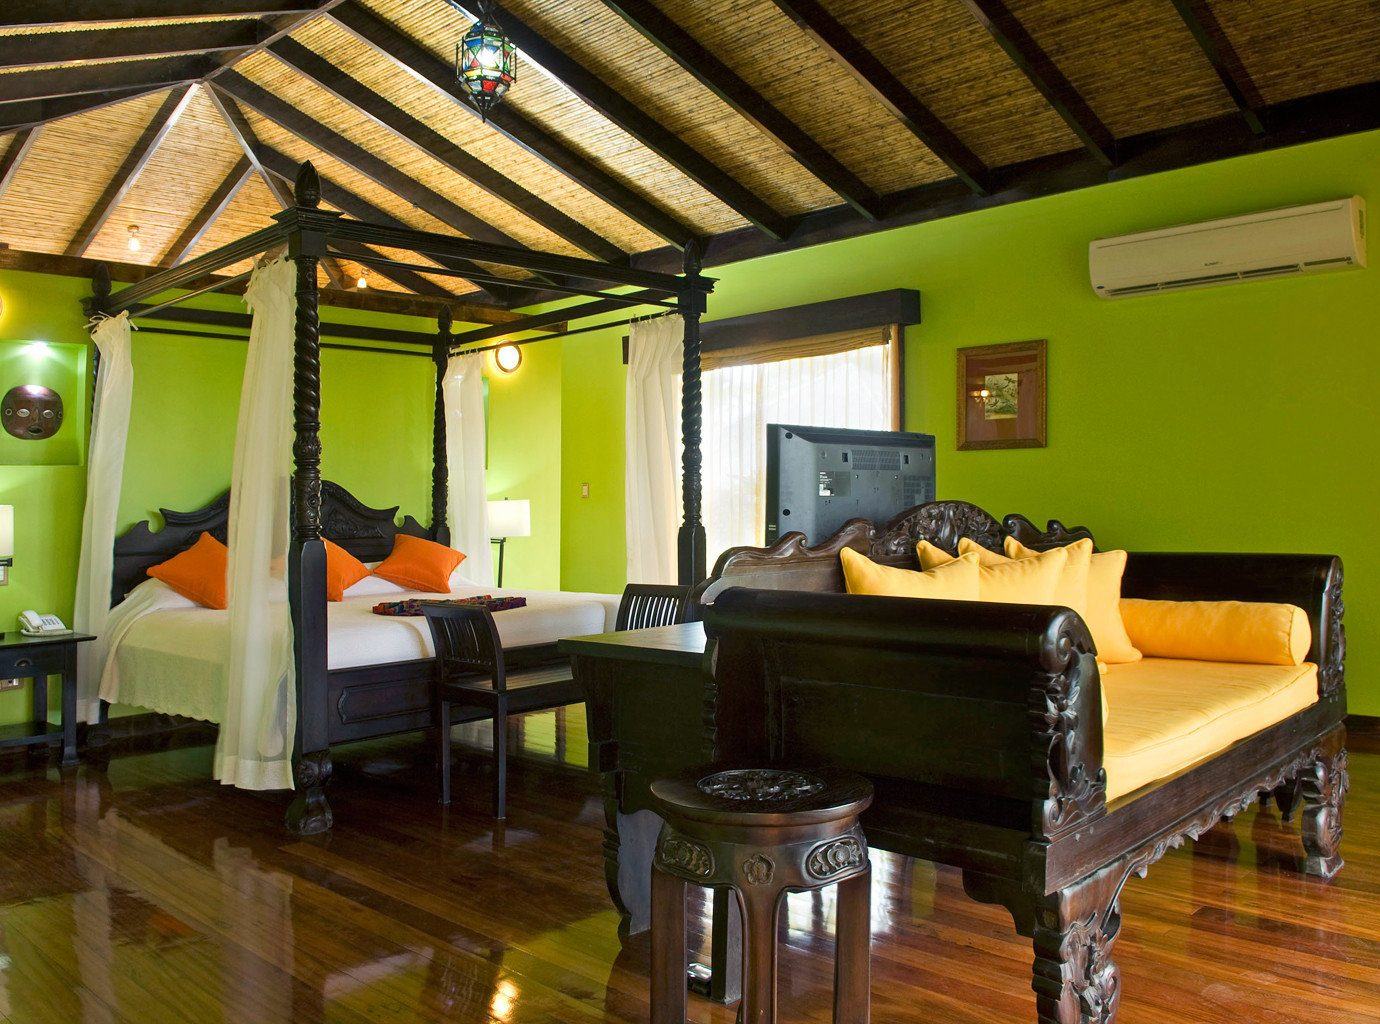 Bedroom Elegant Historic Lounge Luxury Suite property green Resort Villa recreation room cottage living room restaurant